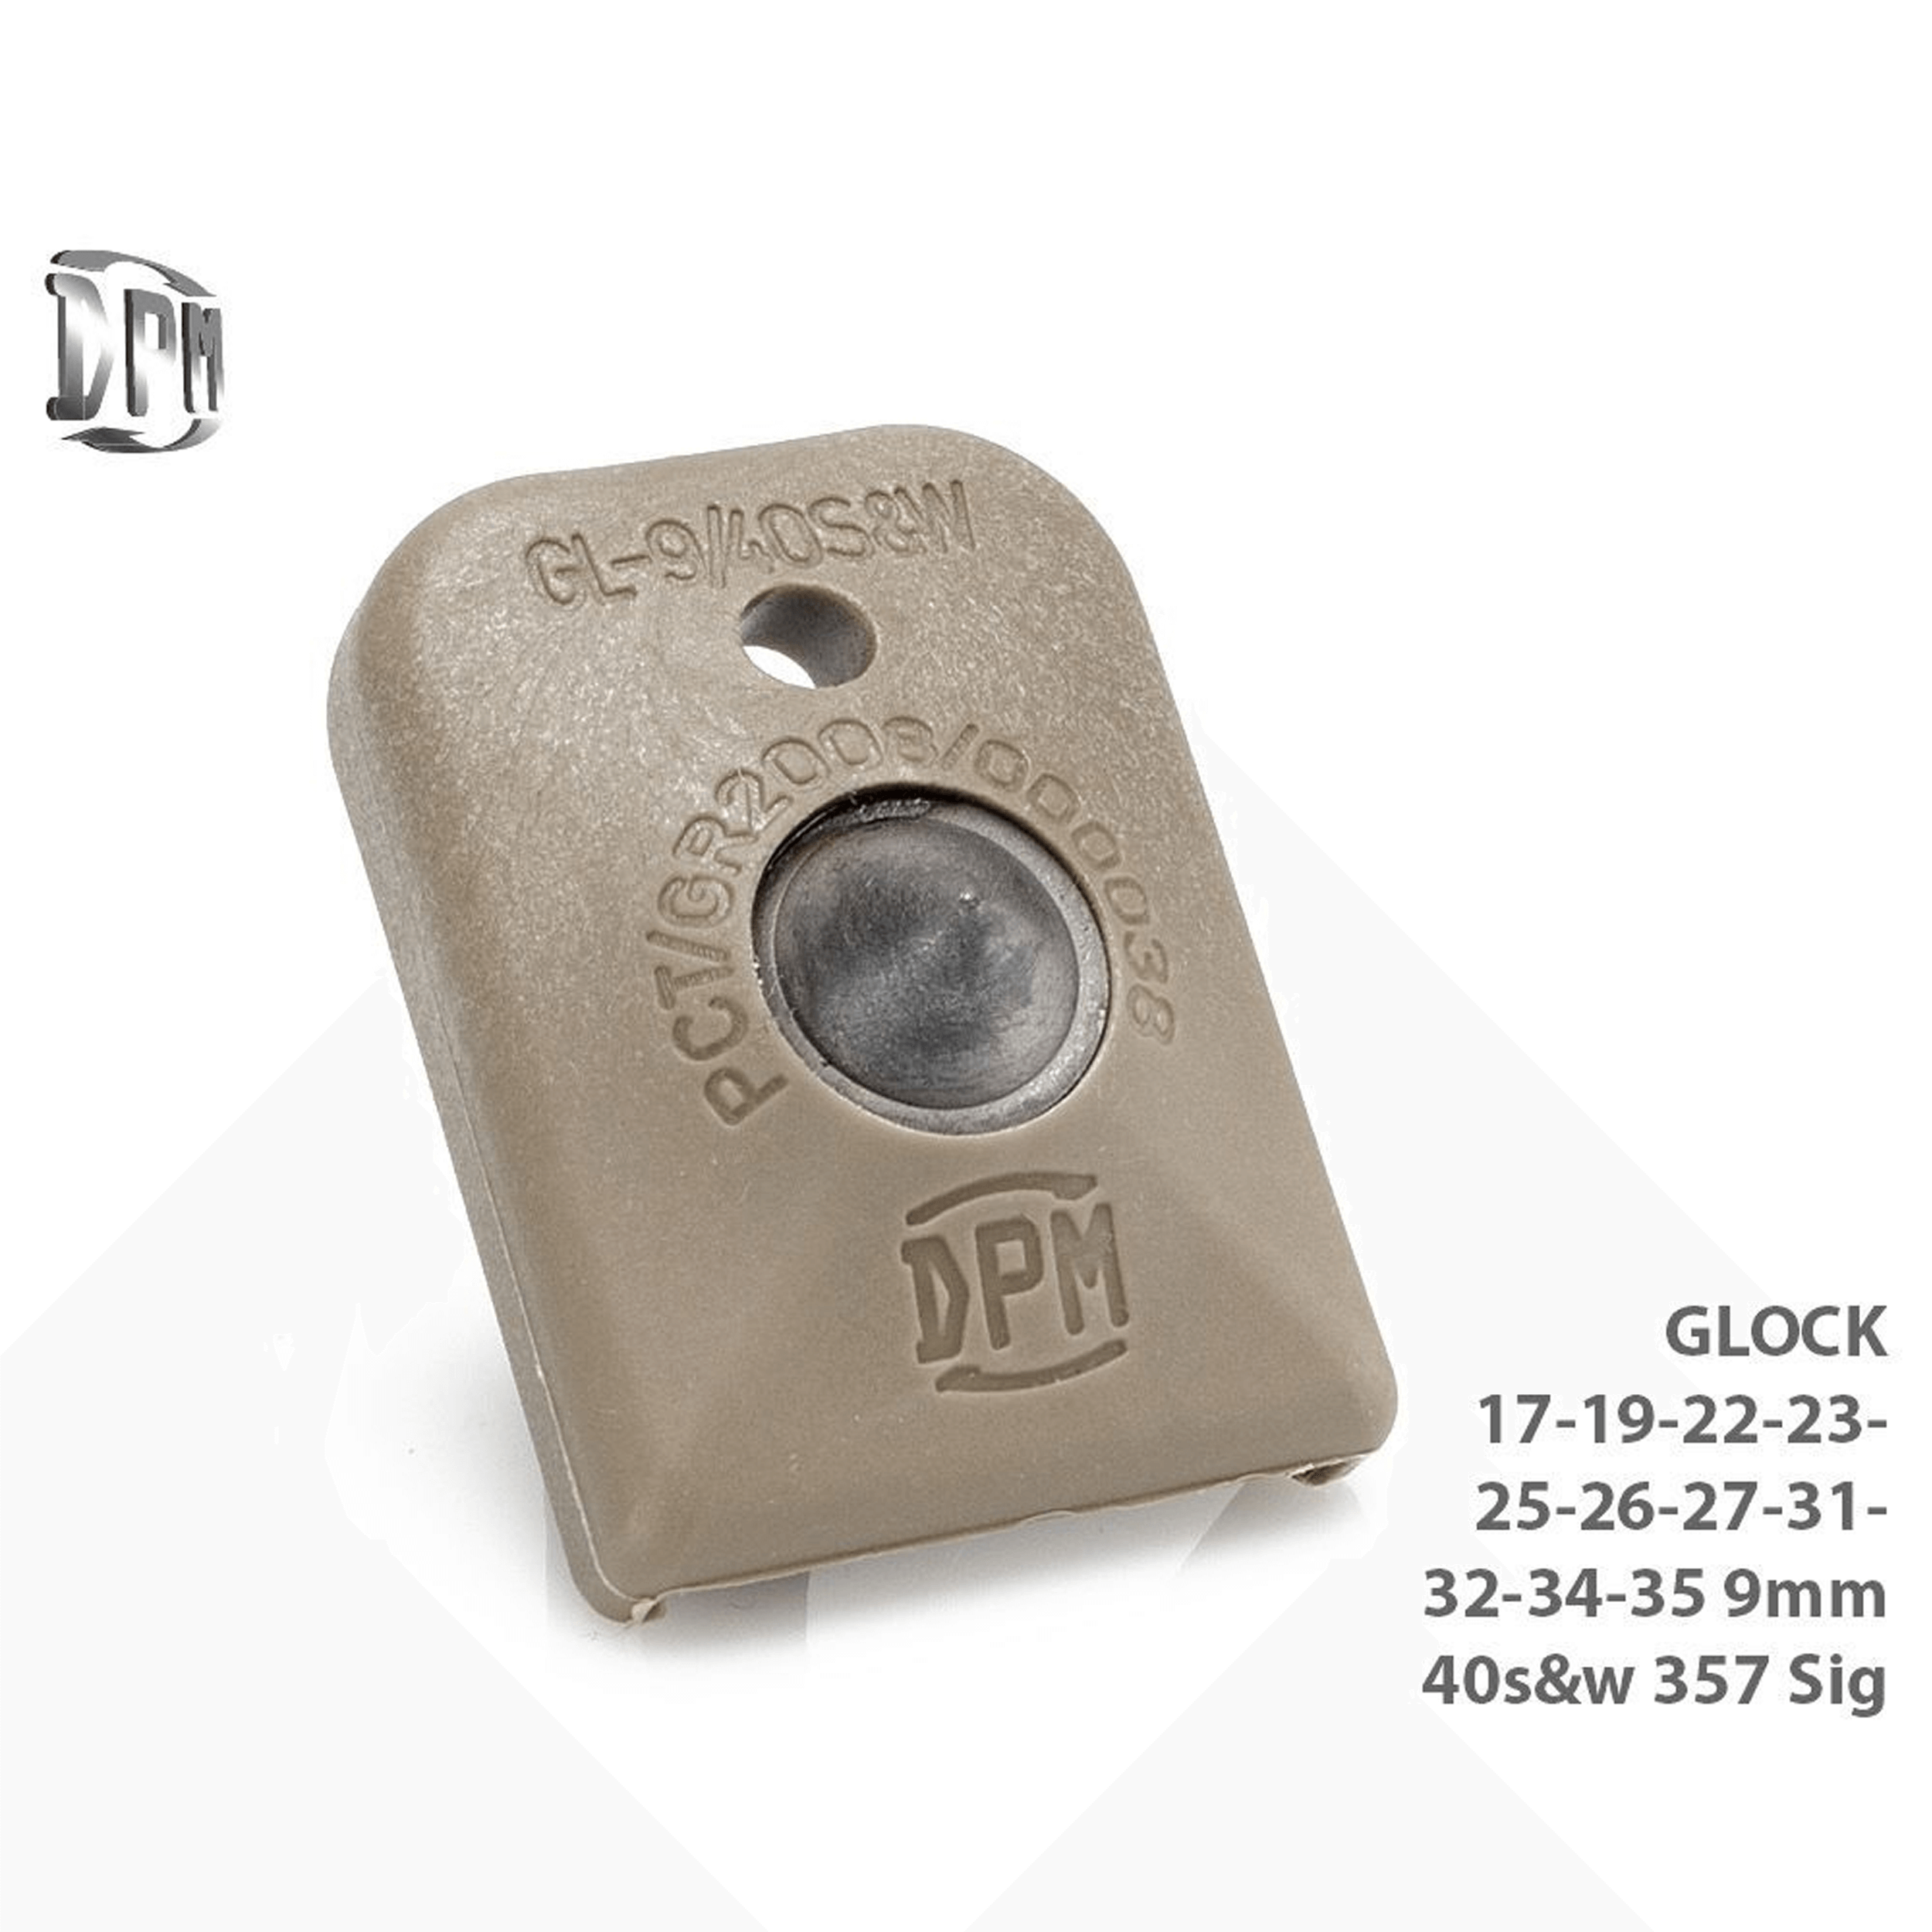 GLOCK 17 - 19 FLOORPLATE - GLASS BREAKER